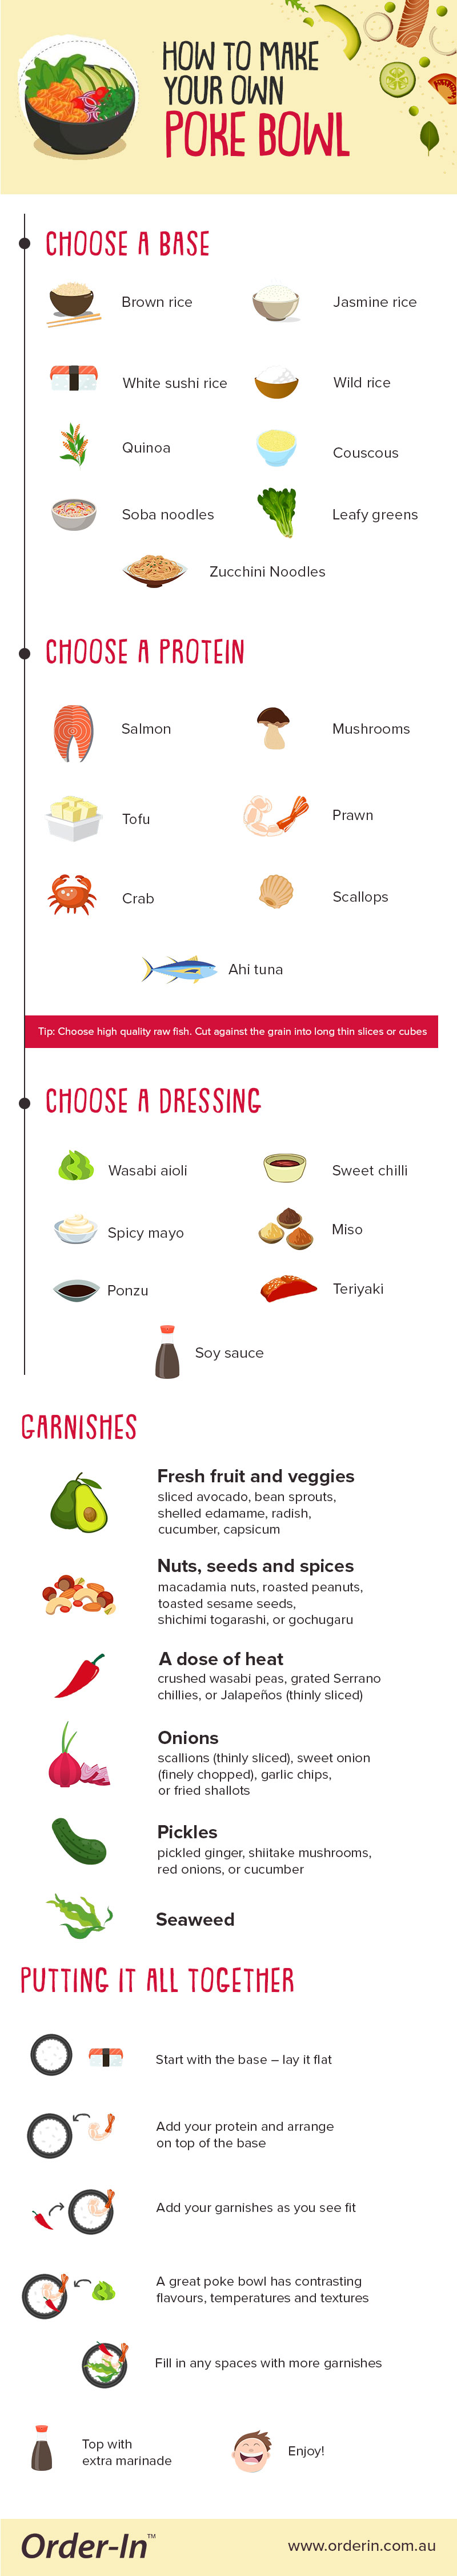 how to make your own healthy poke bowl infographic